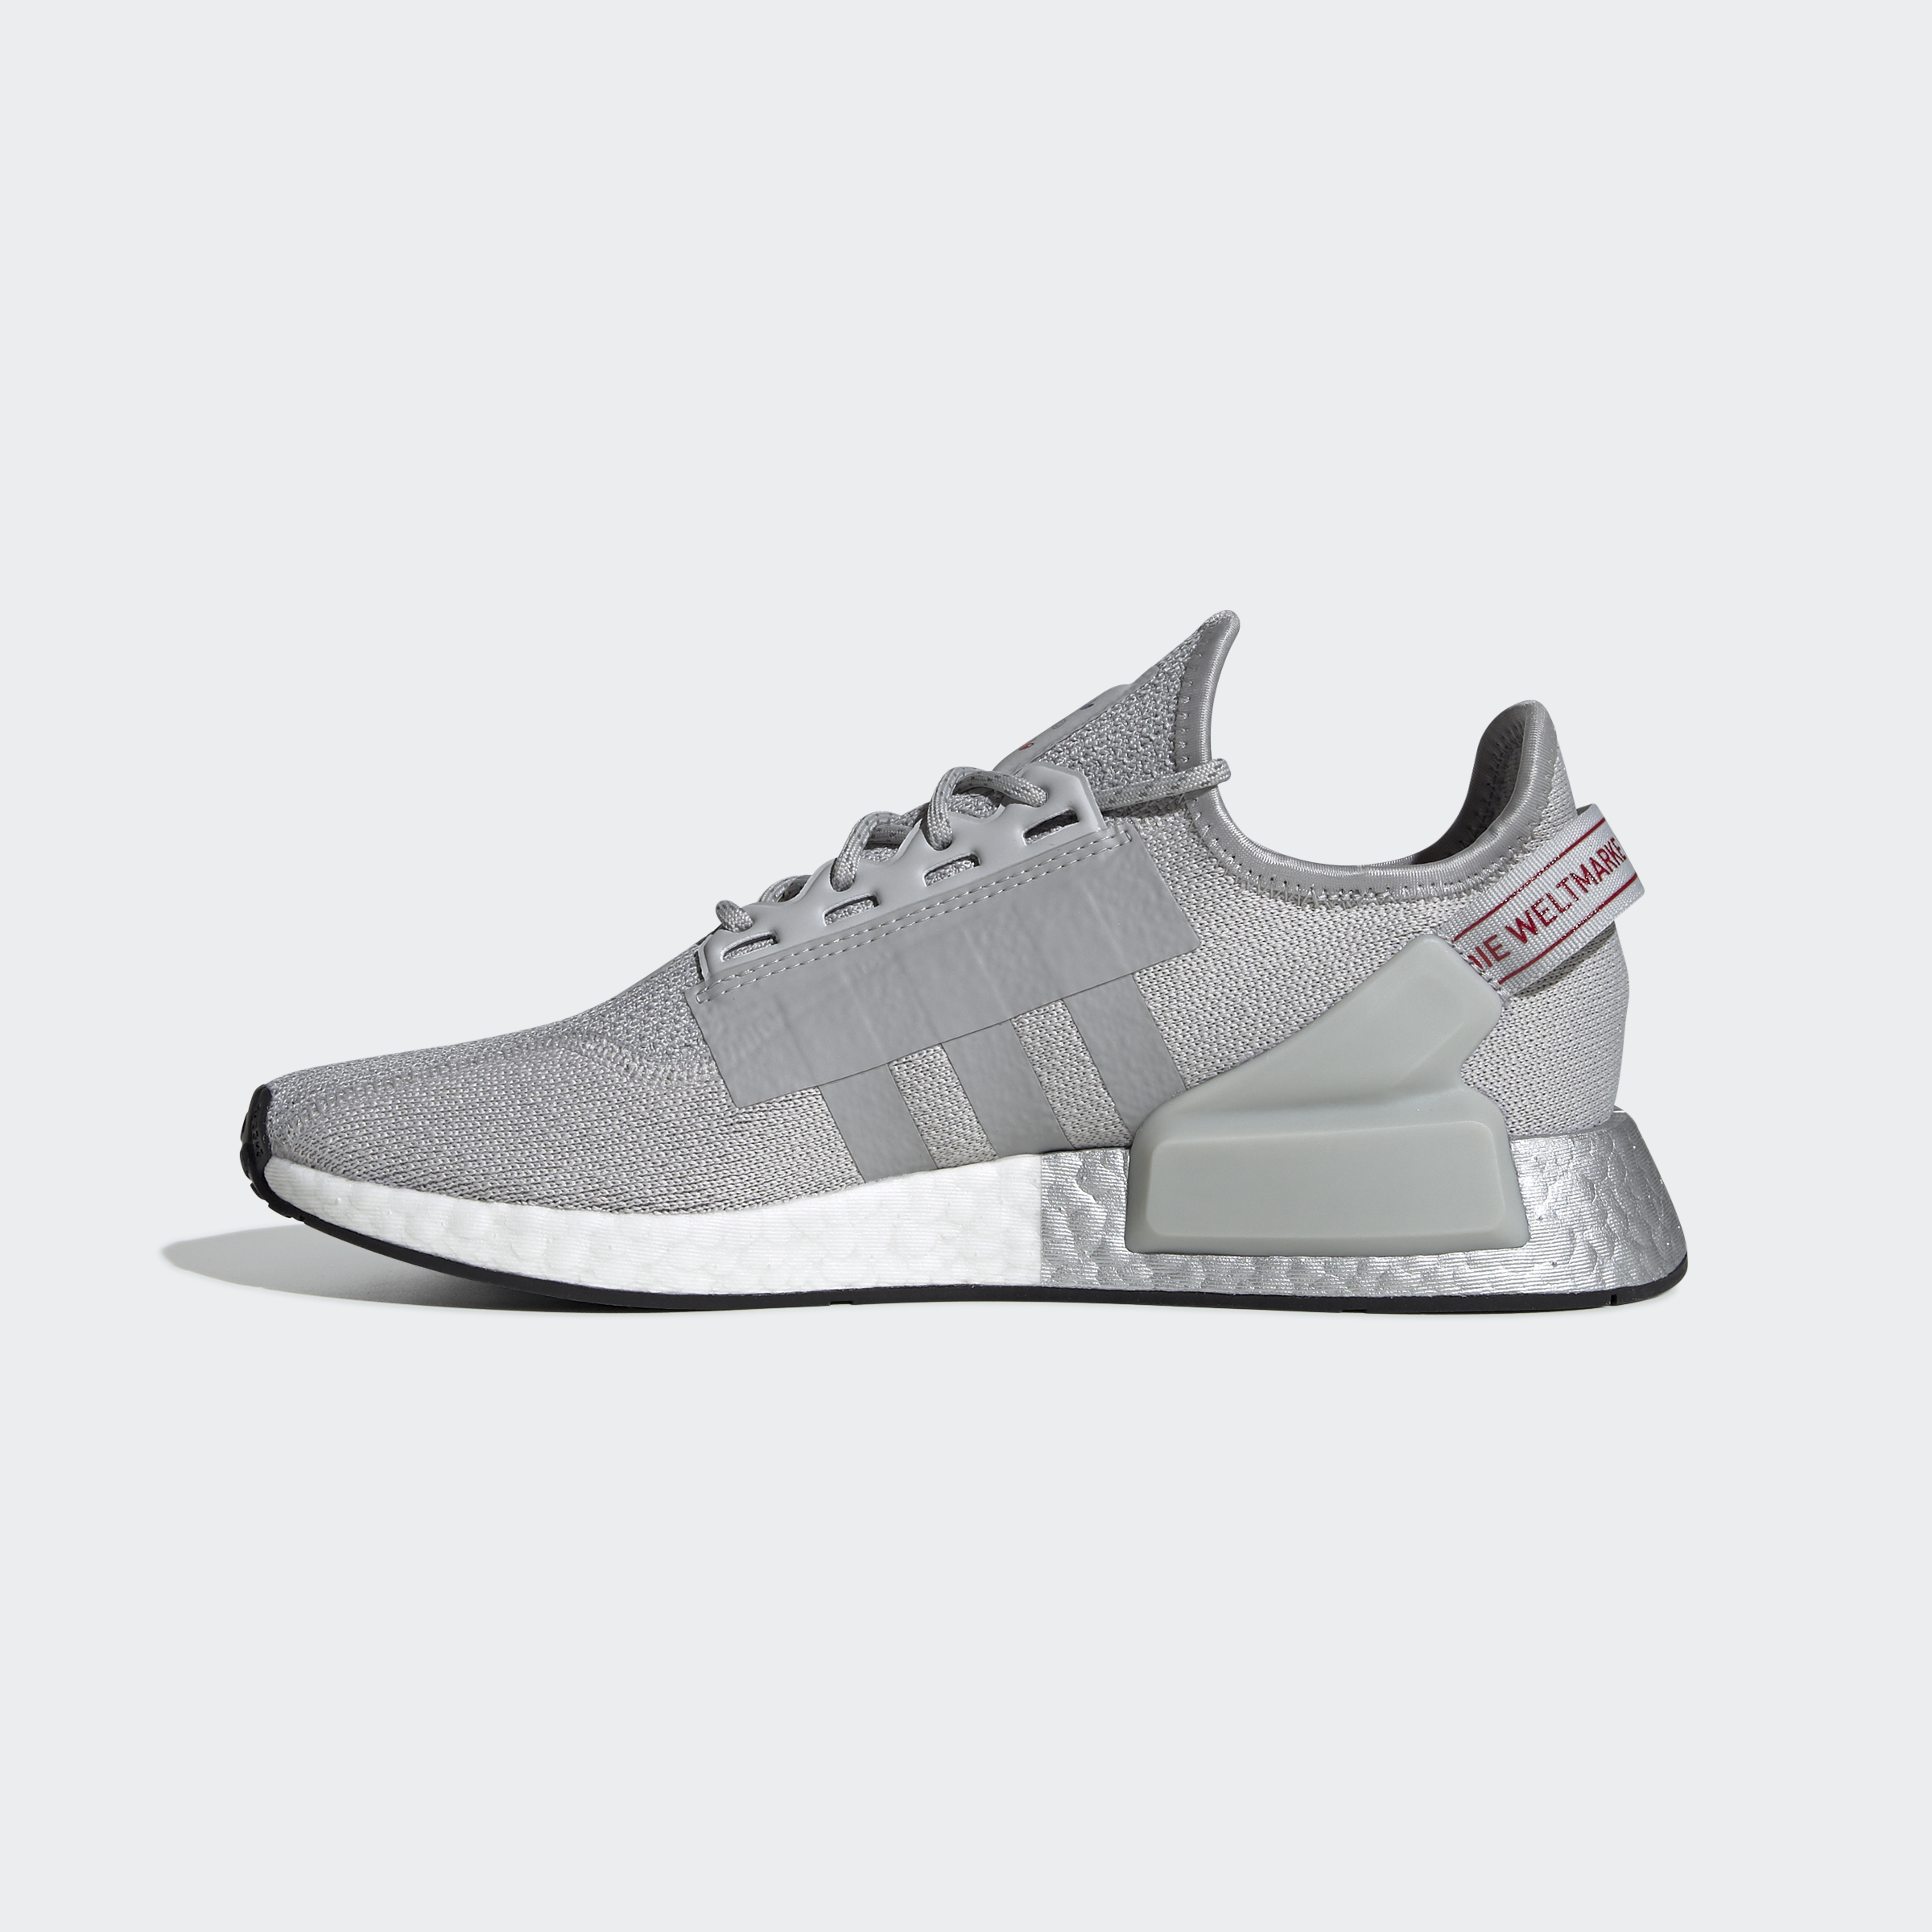 adidas-NMD-R1-V2-Shoes-Athletic-amp-Sneakers thumbnail 12